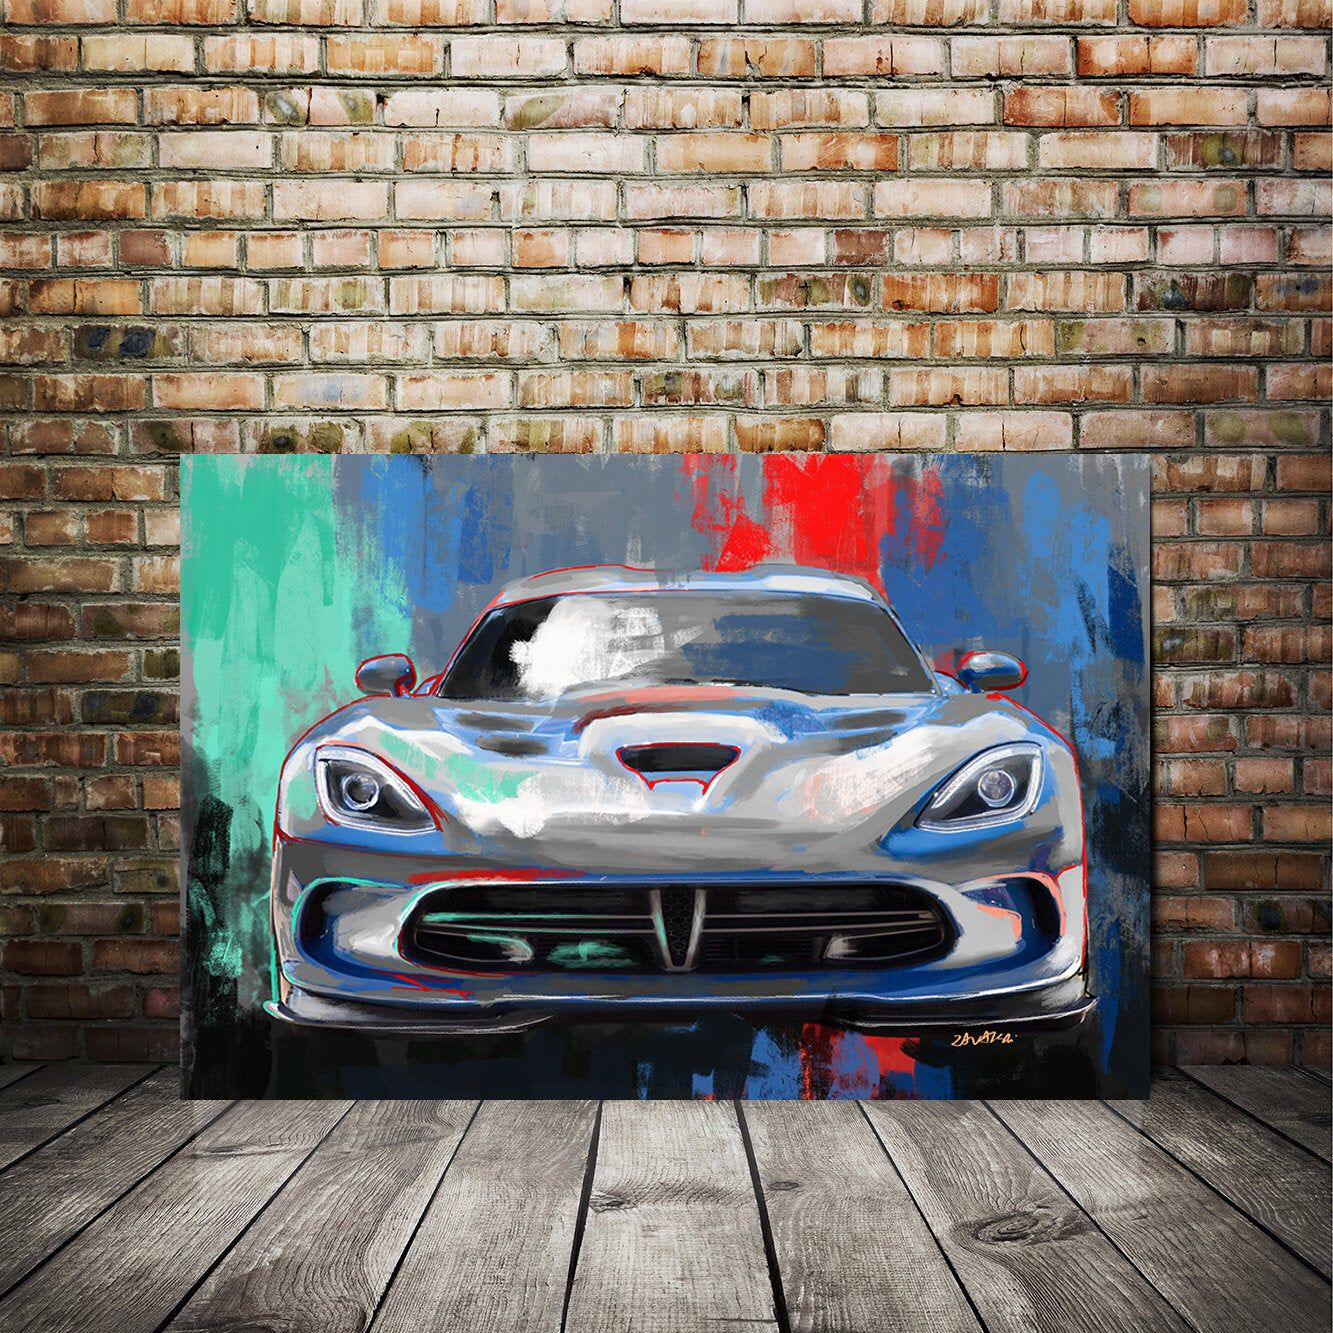 Viper SRT Painting. Classic sports car. | Etsy